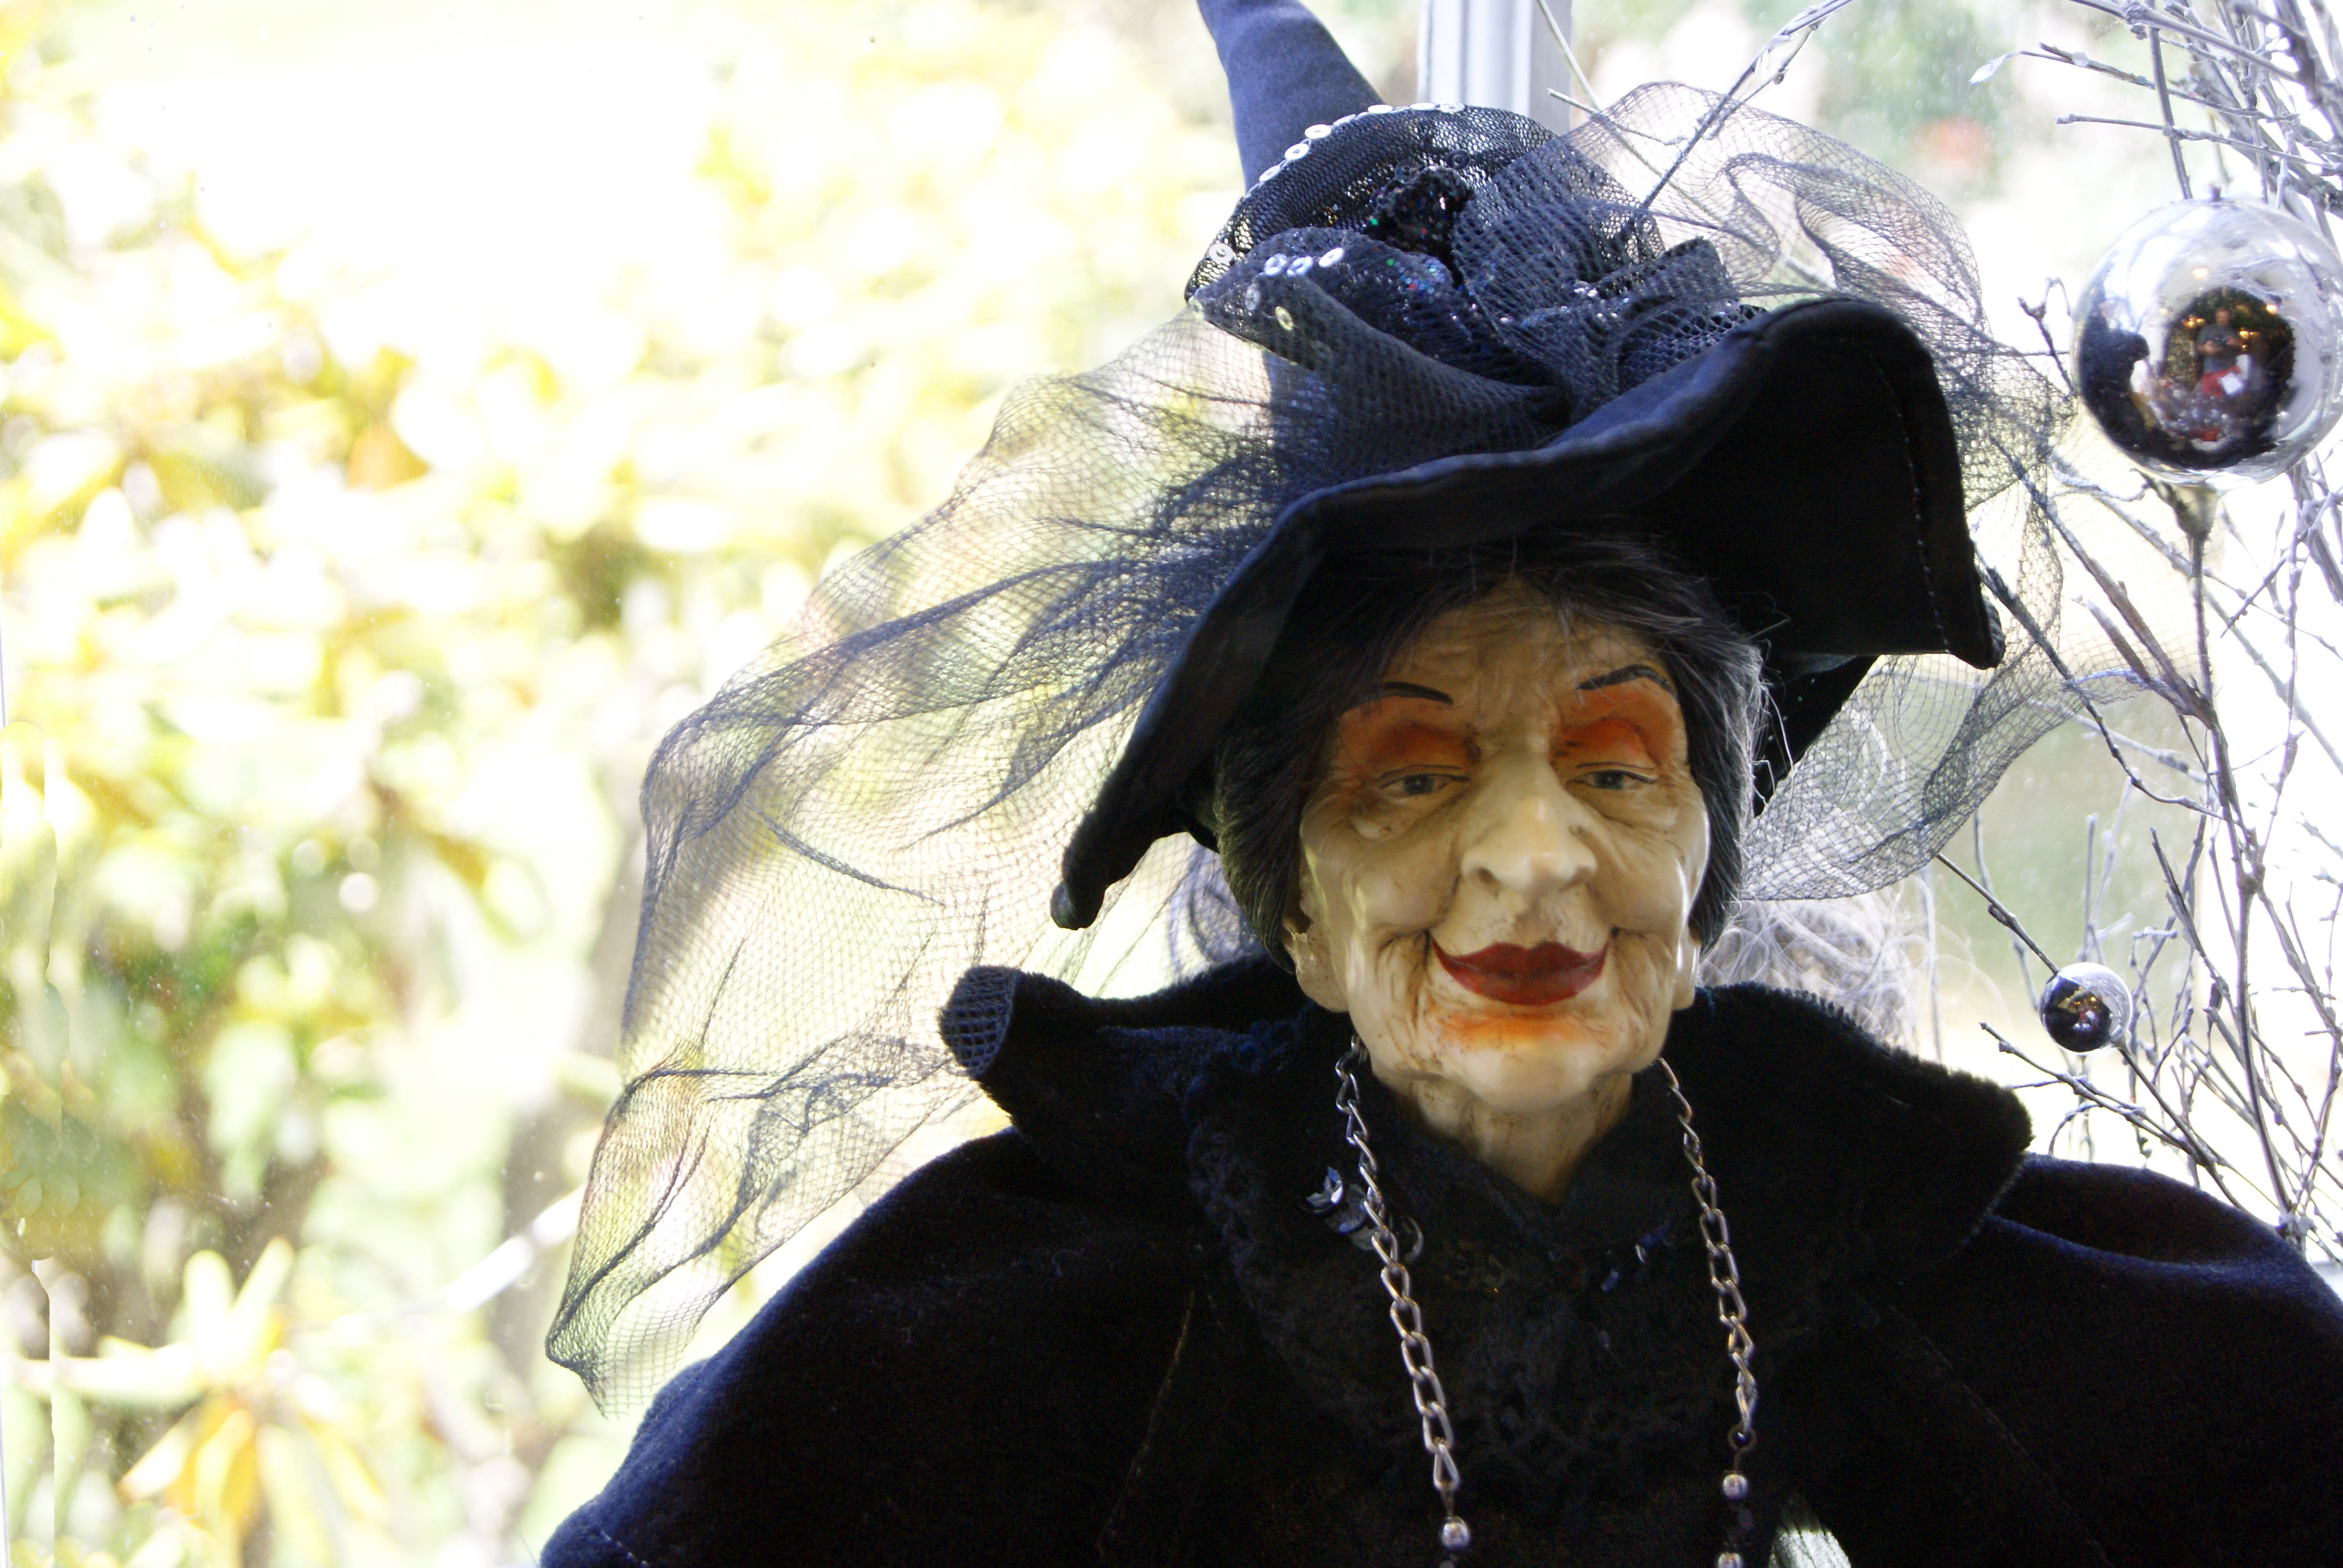 Old Witch, Woman, Puppet, Holiday, Horror, HQ Photo